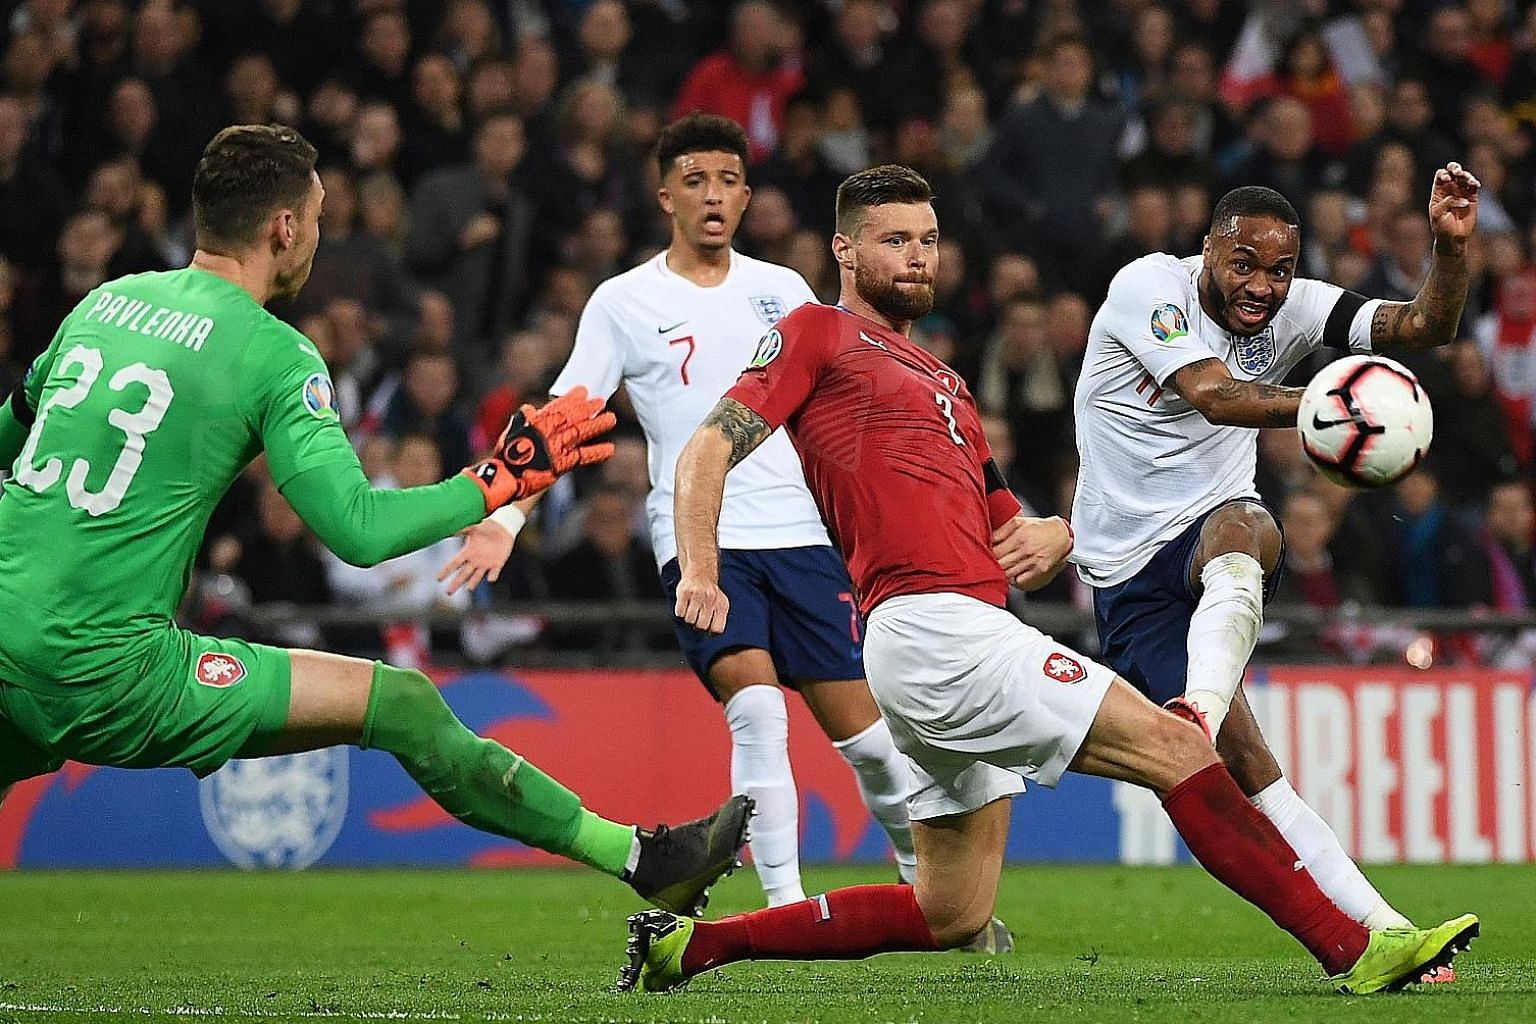 Raheem Sterling curling the ball around defender Ondrej Celustka and goalkeeper Jiri Pavlenka for his second goal to put England 3-0 up against the Czech Republic in their Euro qualifier at Wembley on Friday.